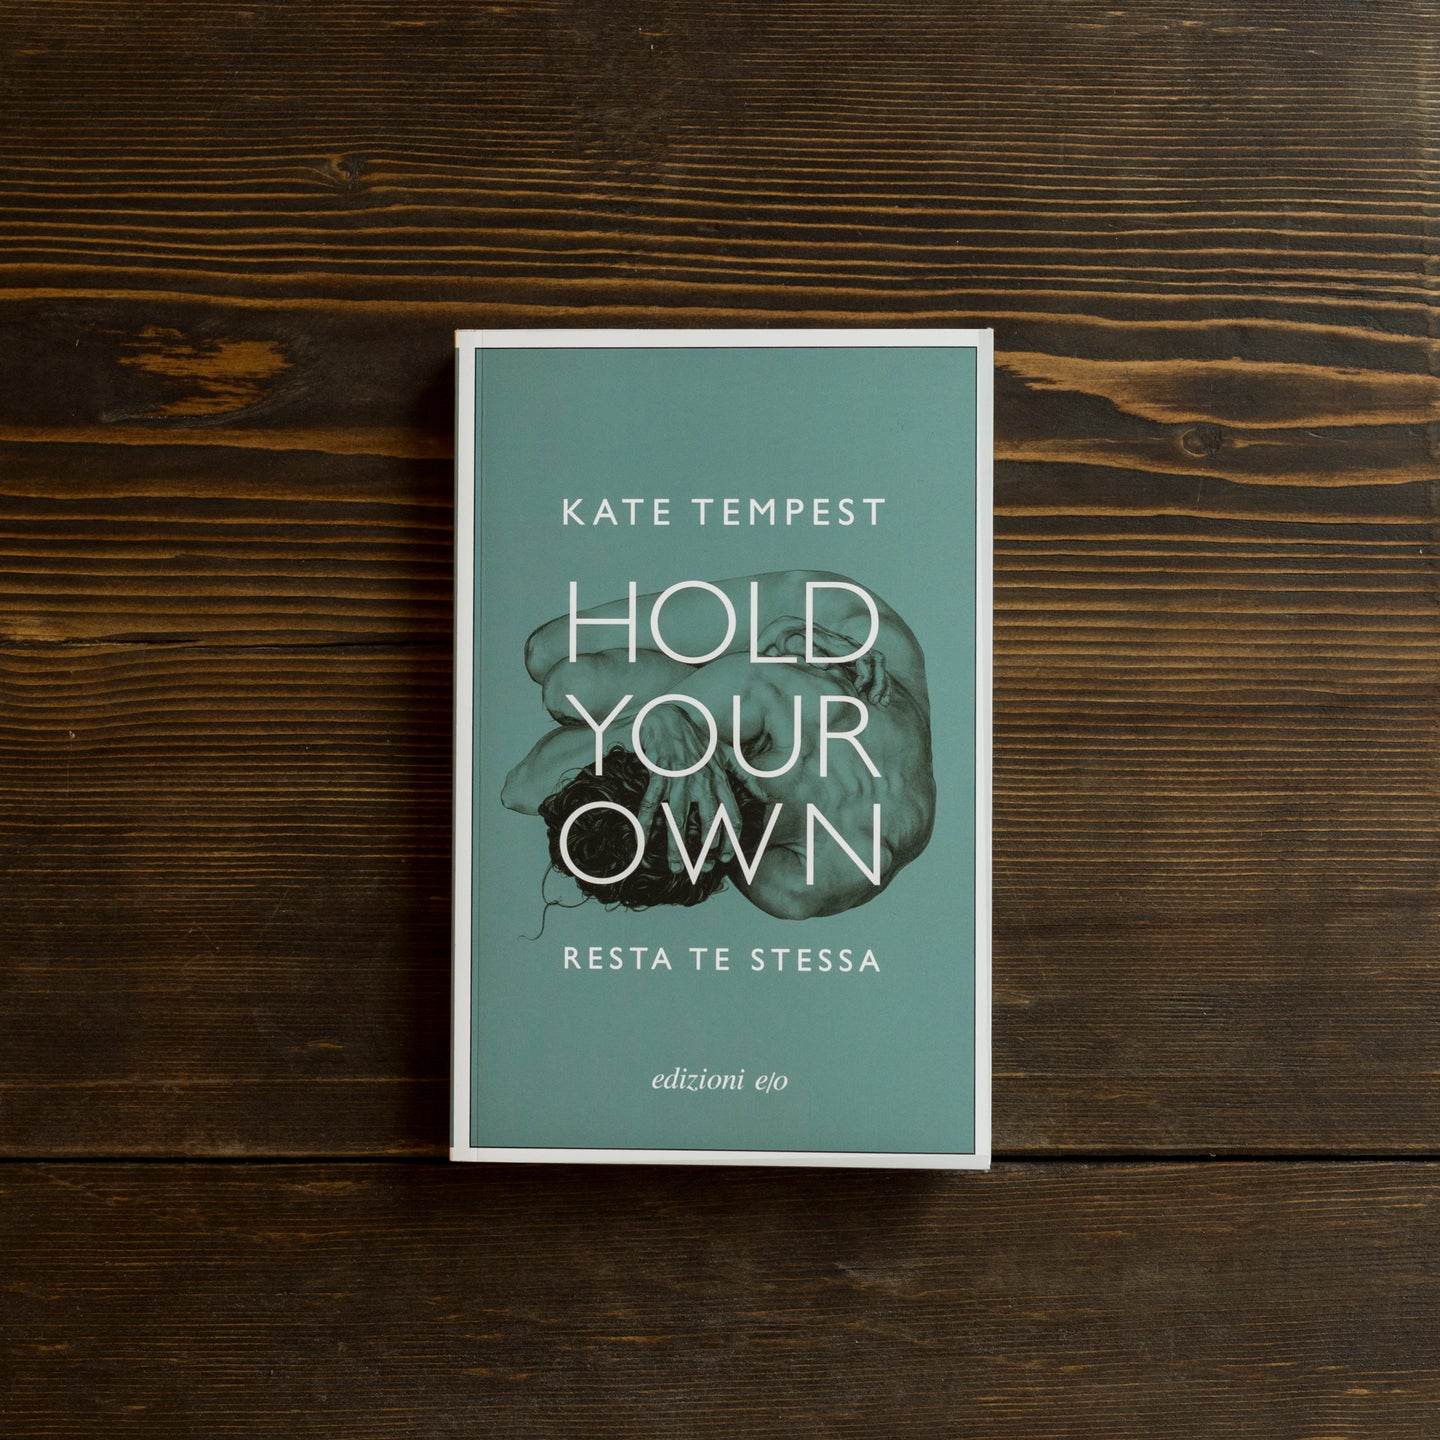 HOLD YOUR OWN. RESTA TE STESSA - KATE TEMPEST